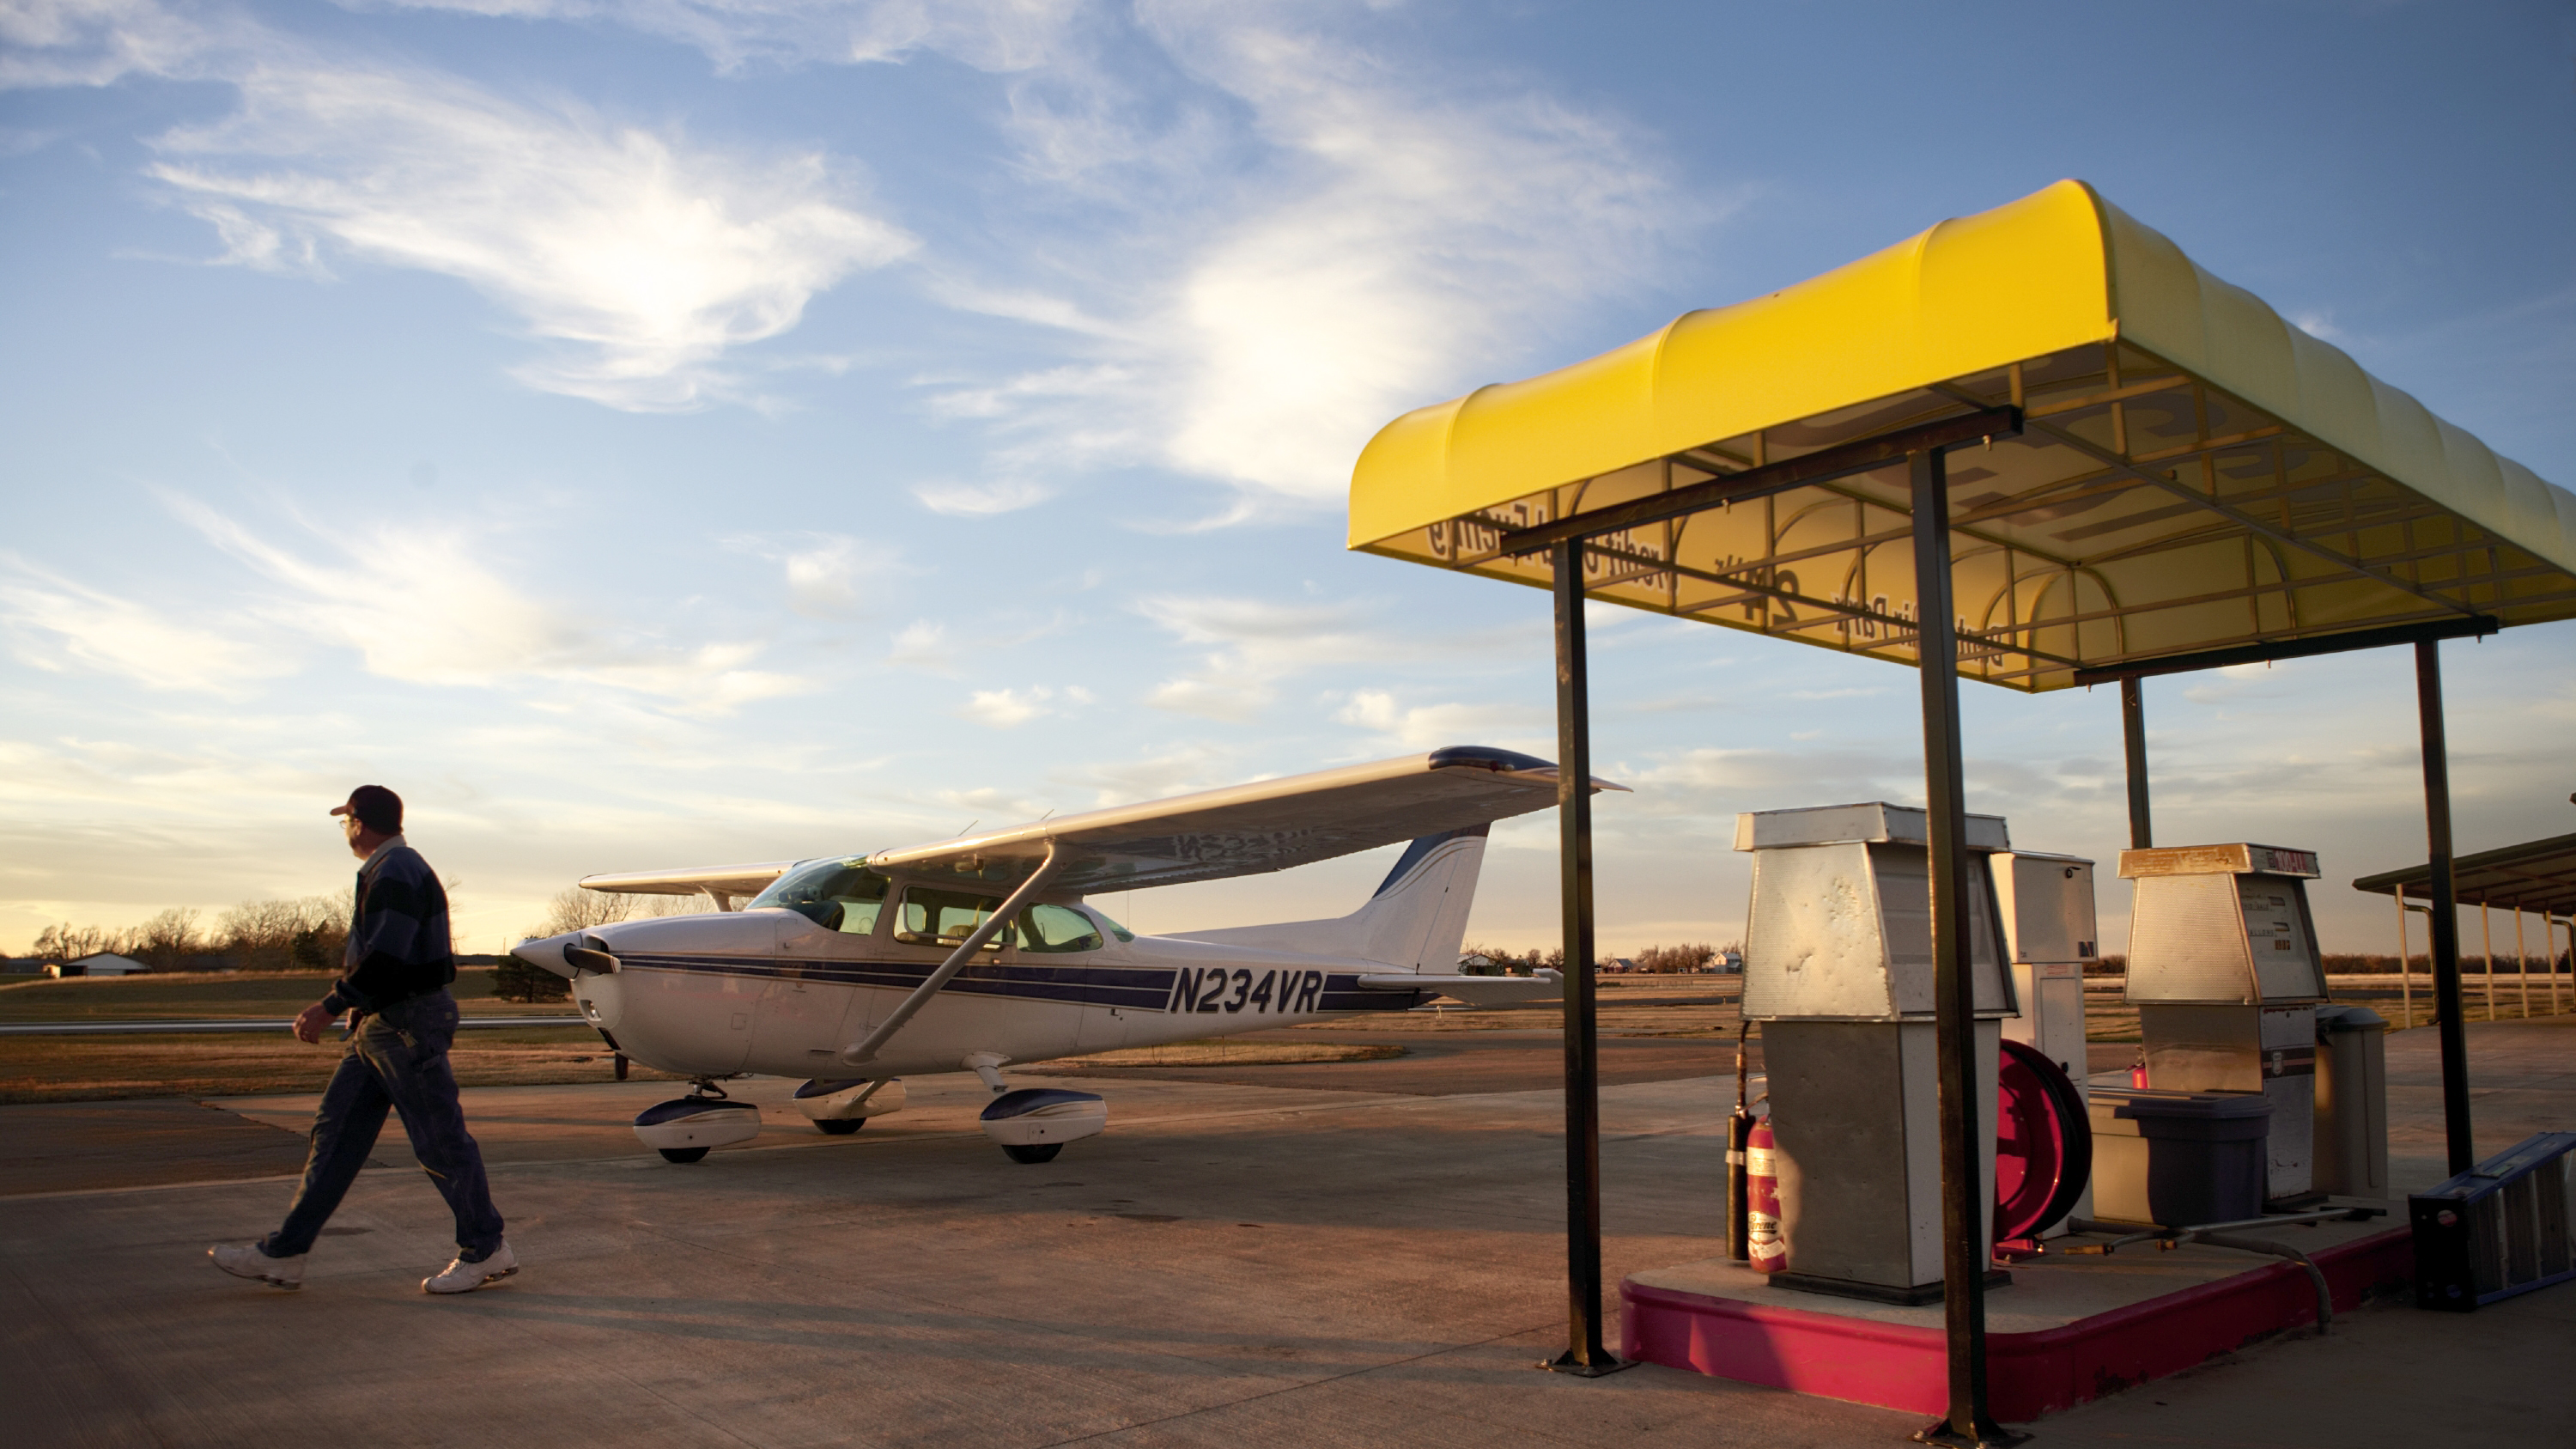 Self-serve fuel is often cheaper than getting fuel from an FBO truck.